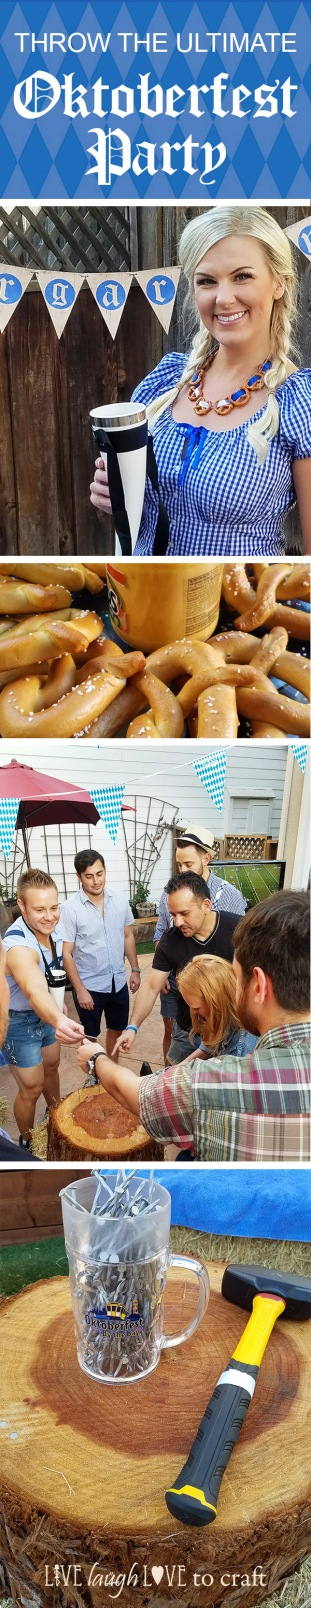 blog-throw-the-ultimate-oktoberfest-themed-fall-party-ideas.jpg